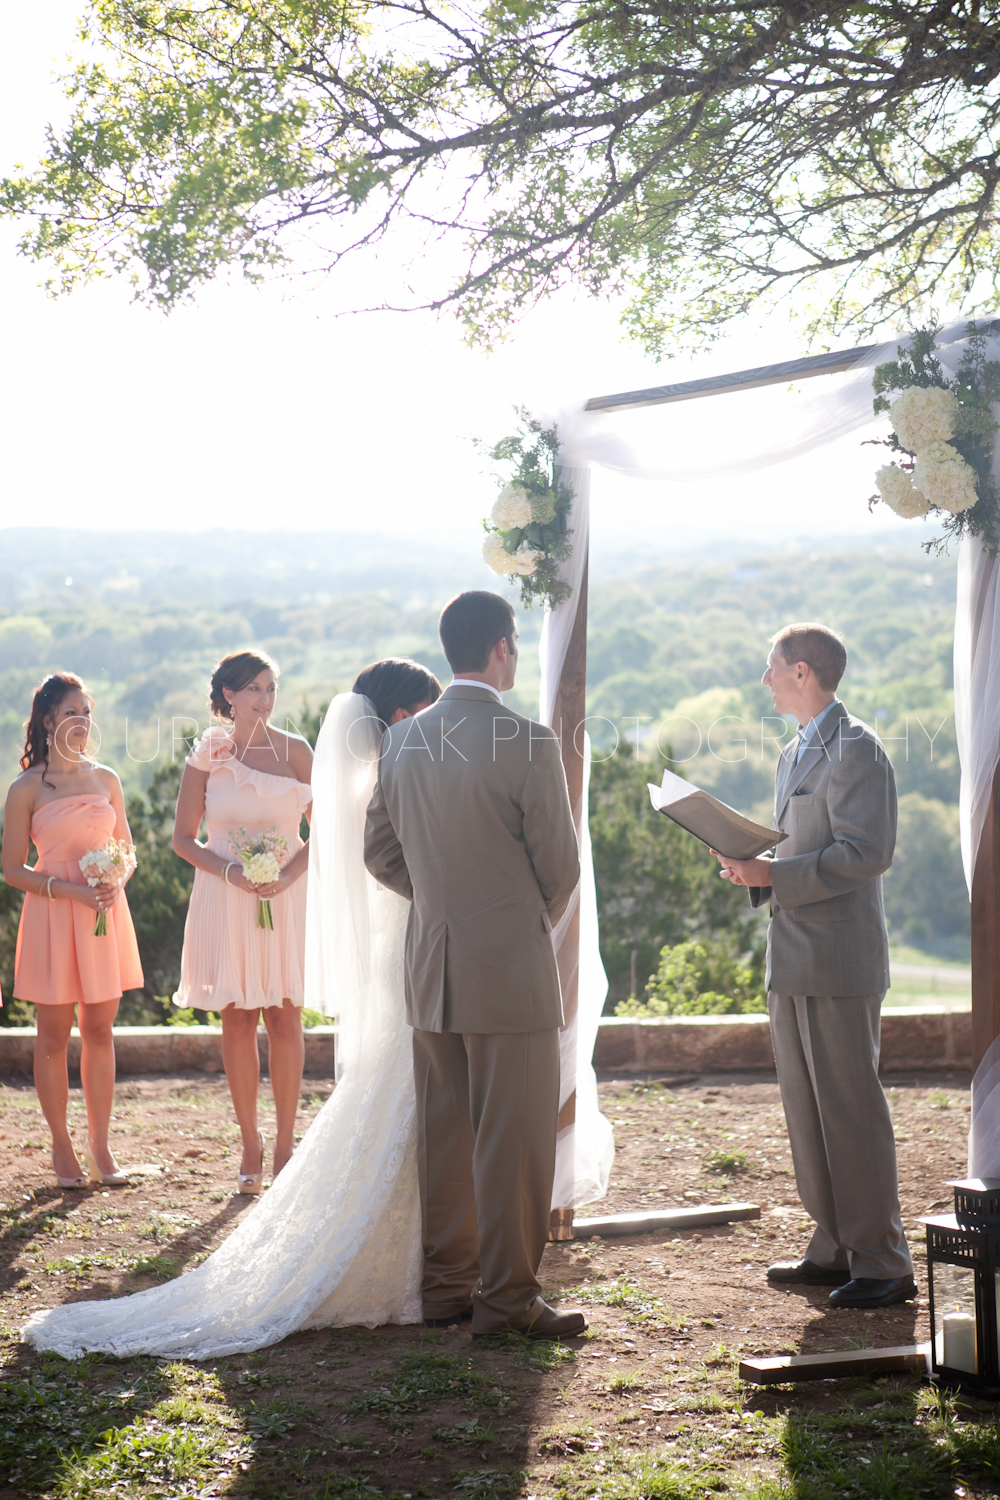 austin-tx-texas-wedding-photography-13.jpg